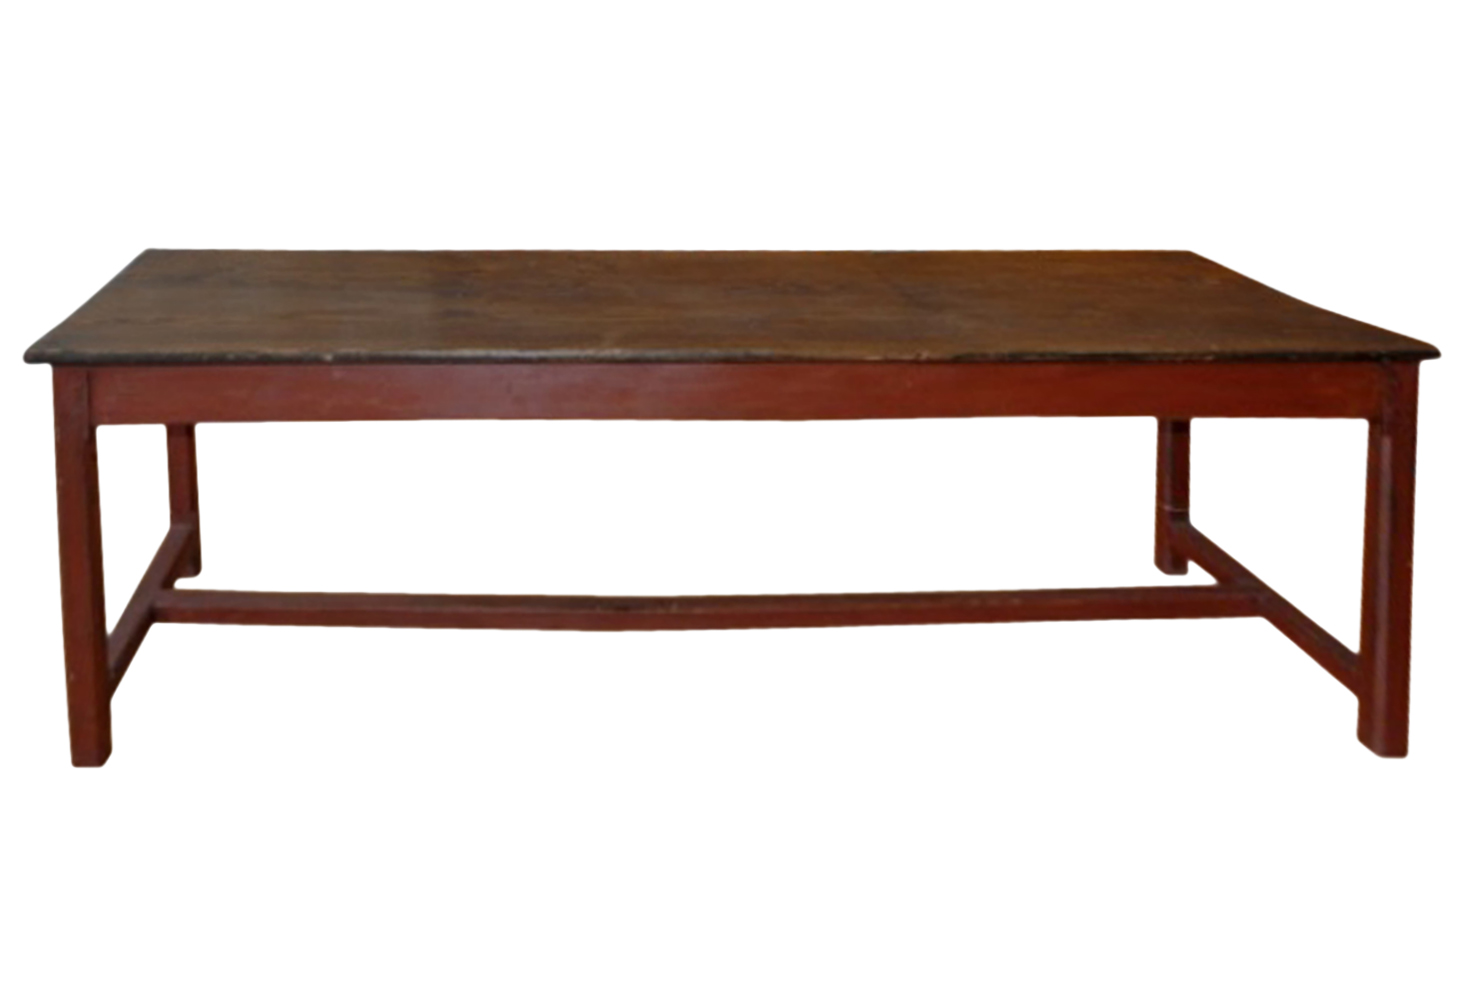 Antique rustic farm table italy omero home for Farmstead table